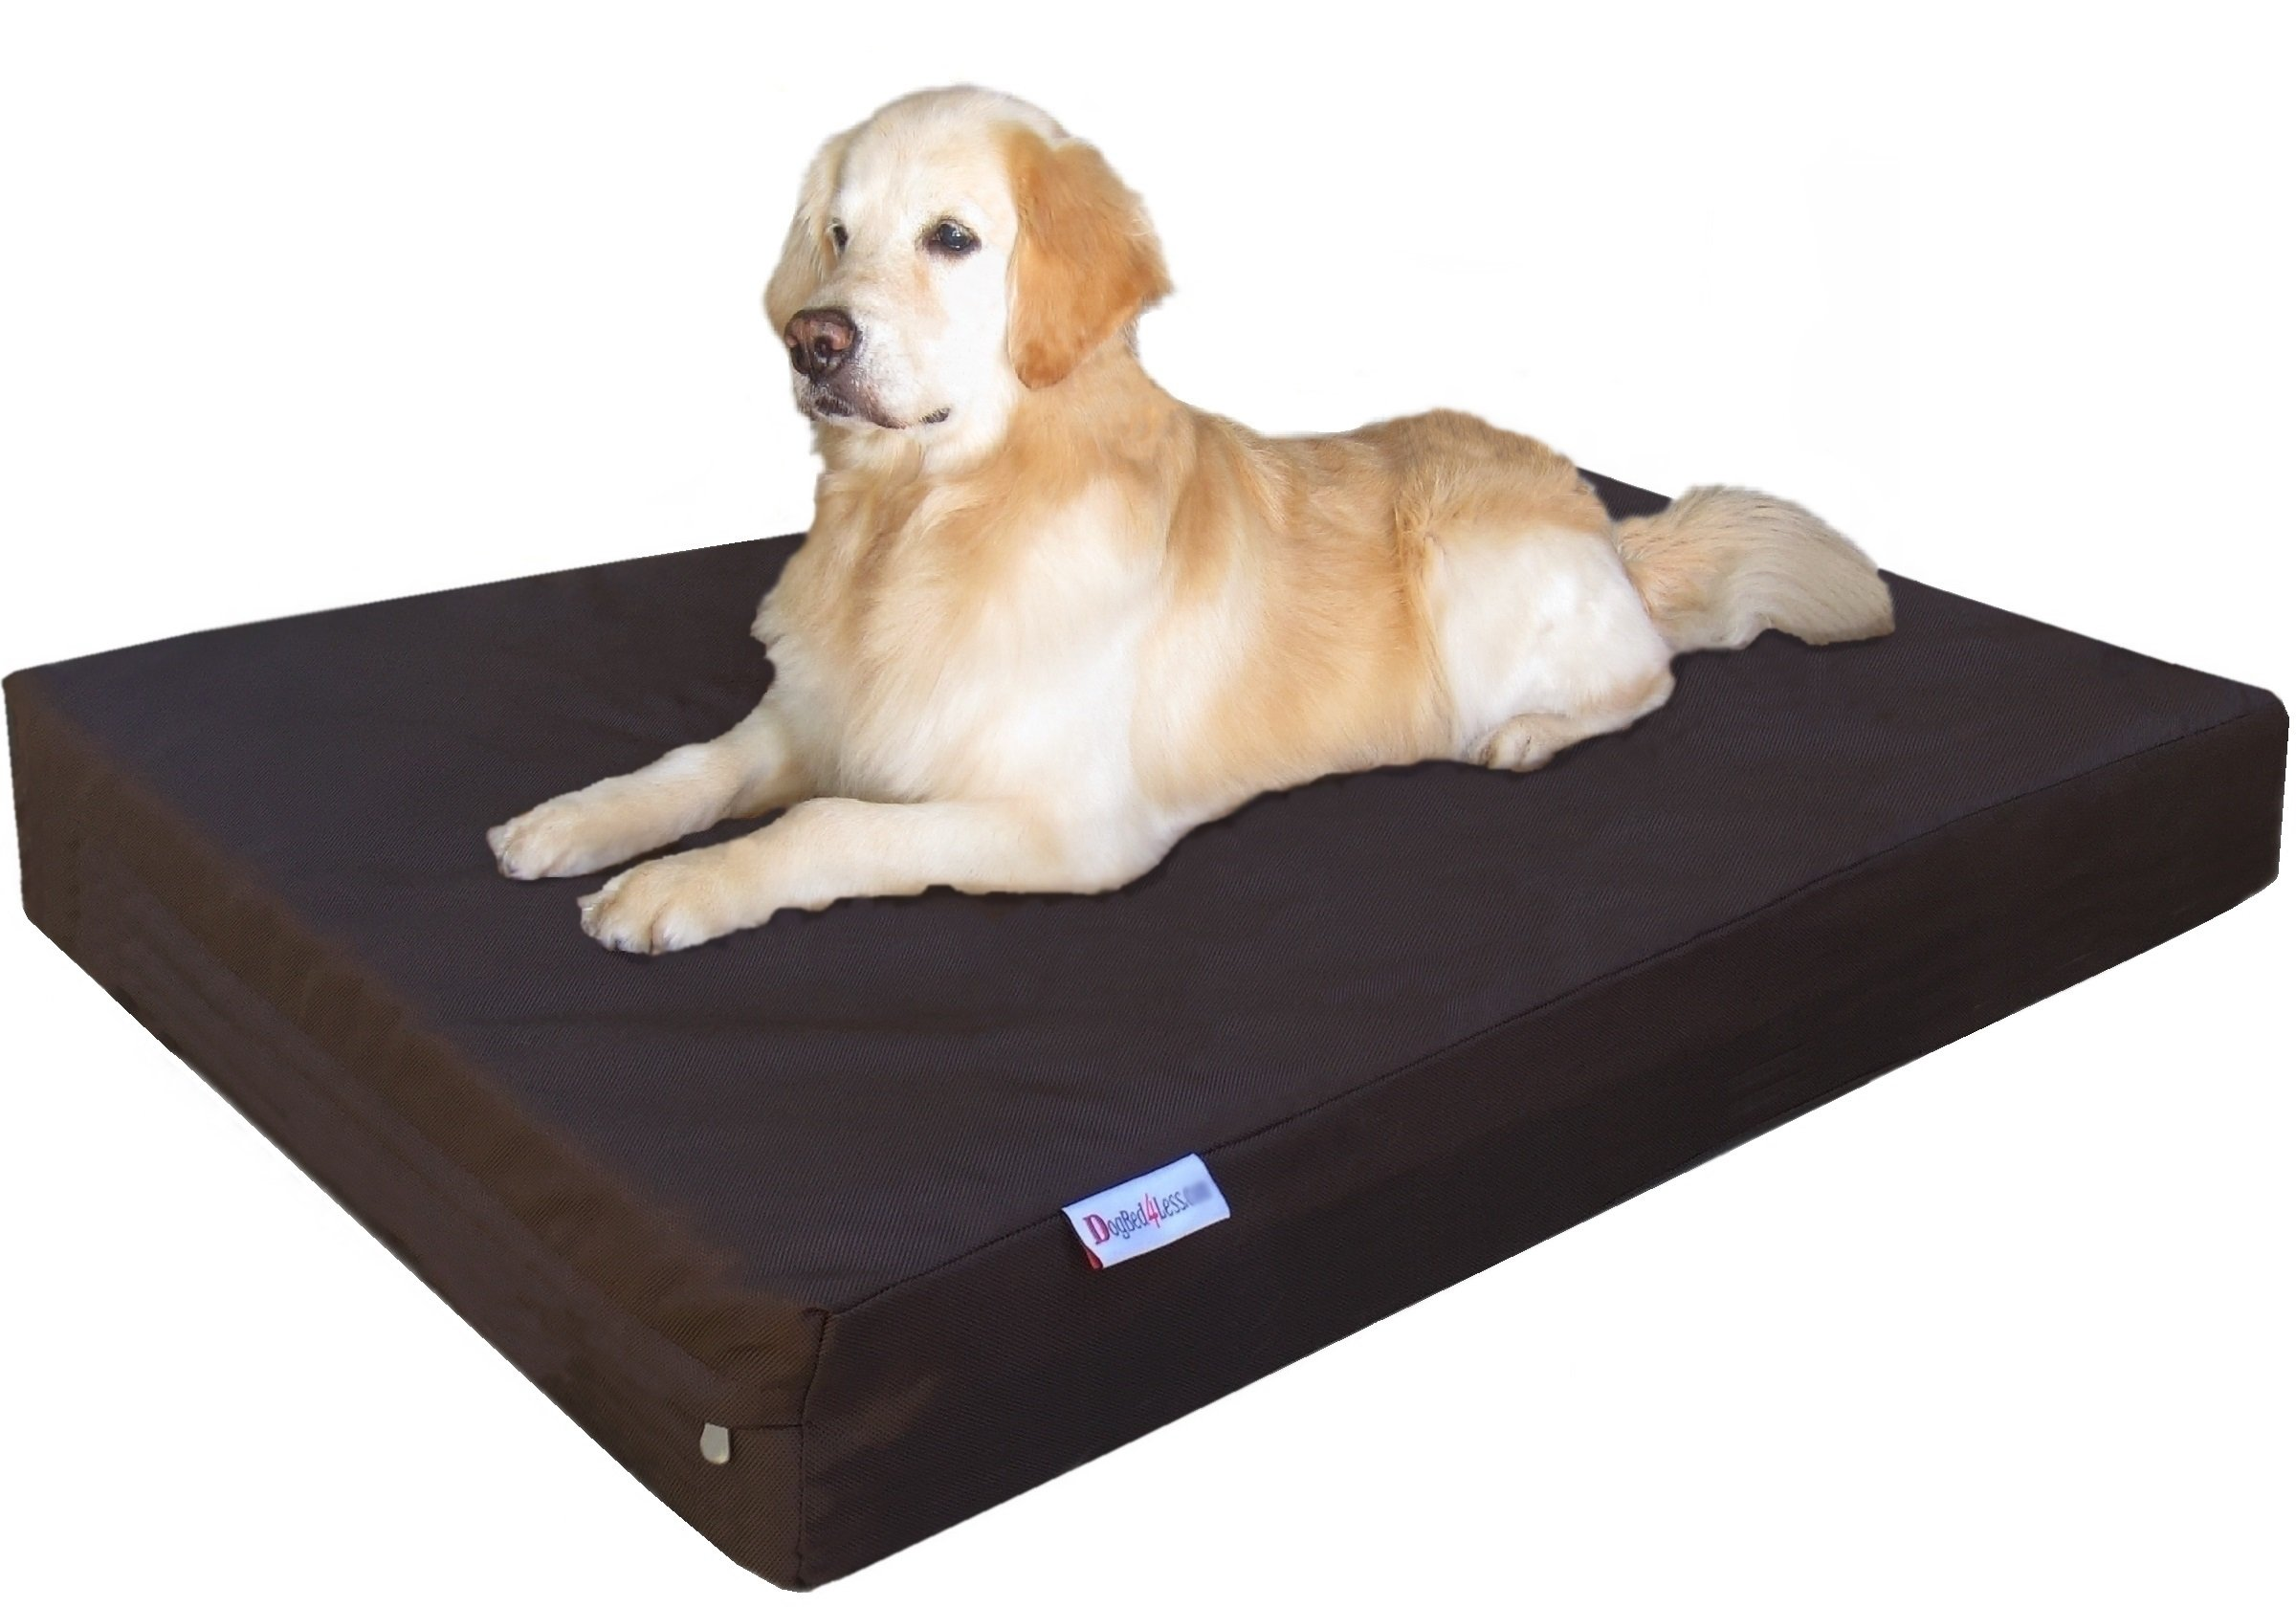 Dogbed4less Jumbo Extra Large Gel Infused Memory Foam Dog Bed with 1680 Nylon Heavy Duty Cover and Waterproof Liner, 55X37X8 Inches, Seal Brown